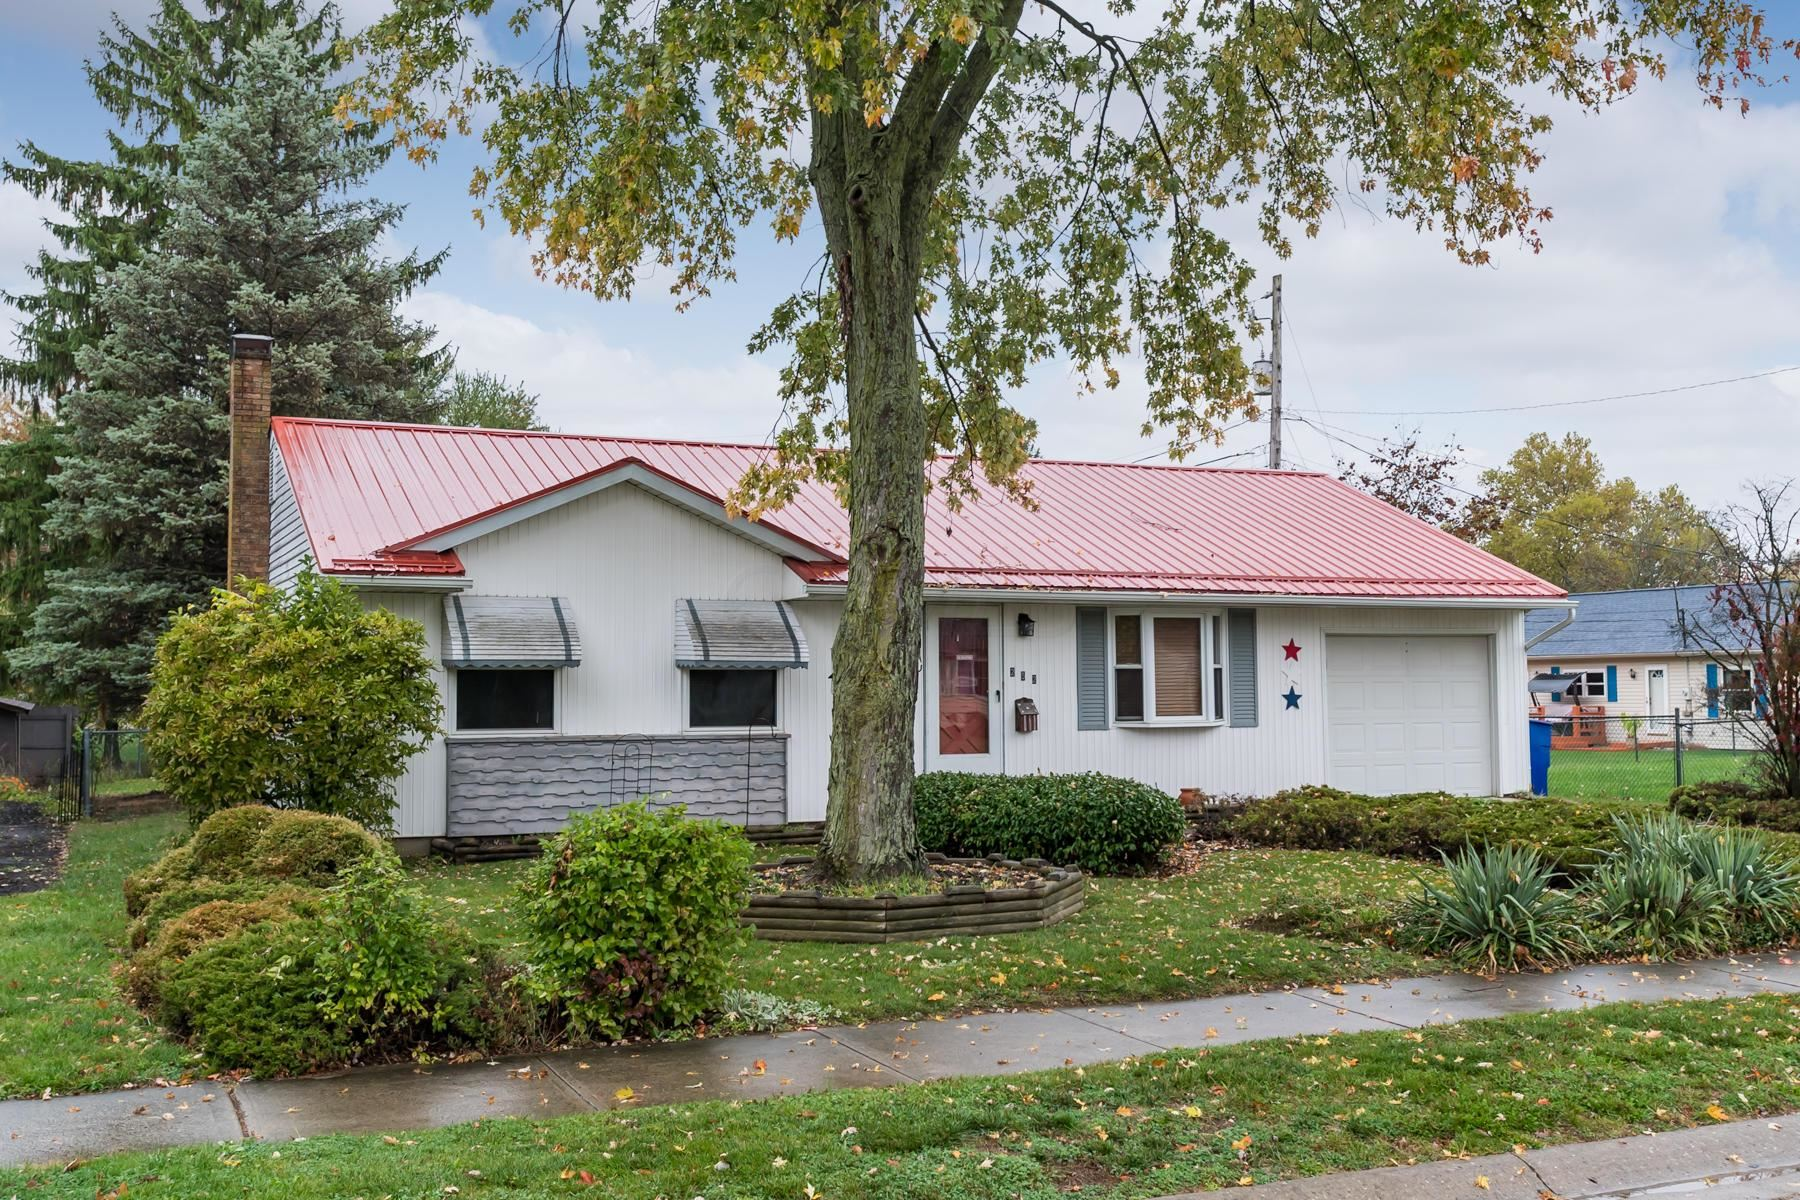 Photo of 252 Penick Avenue, Delaware, OH 43015 (MLS # 220037617)